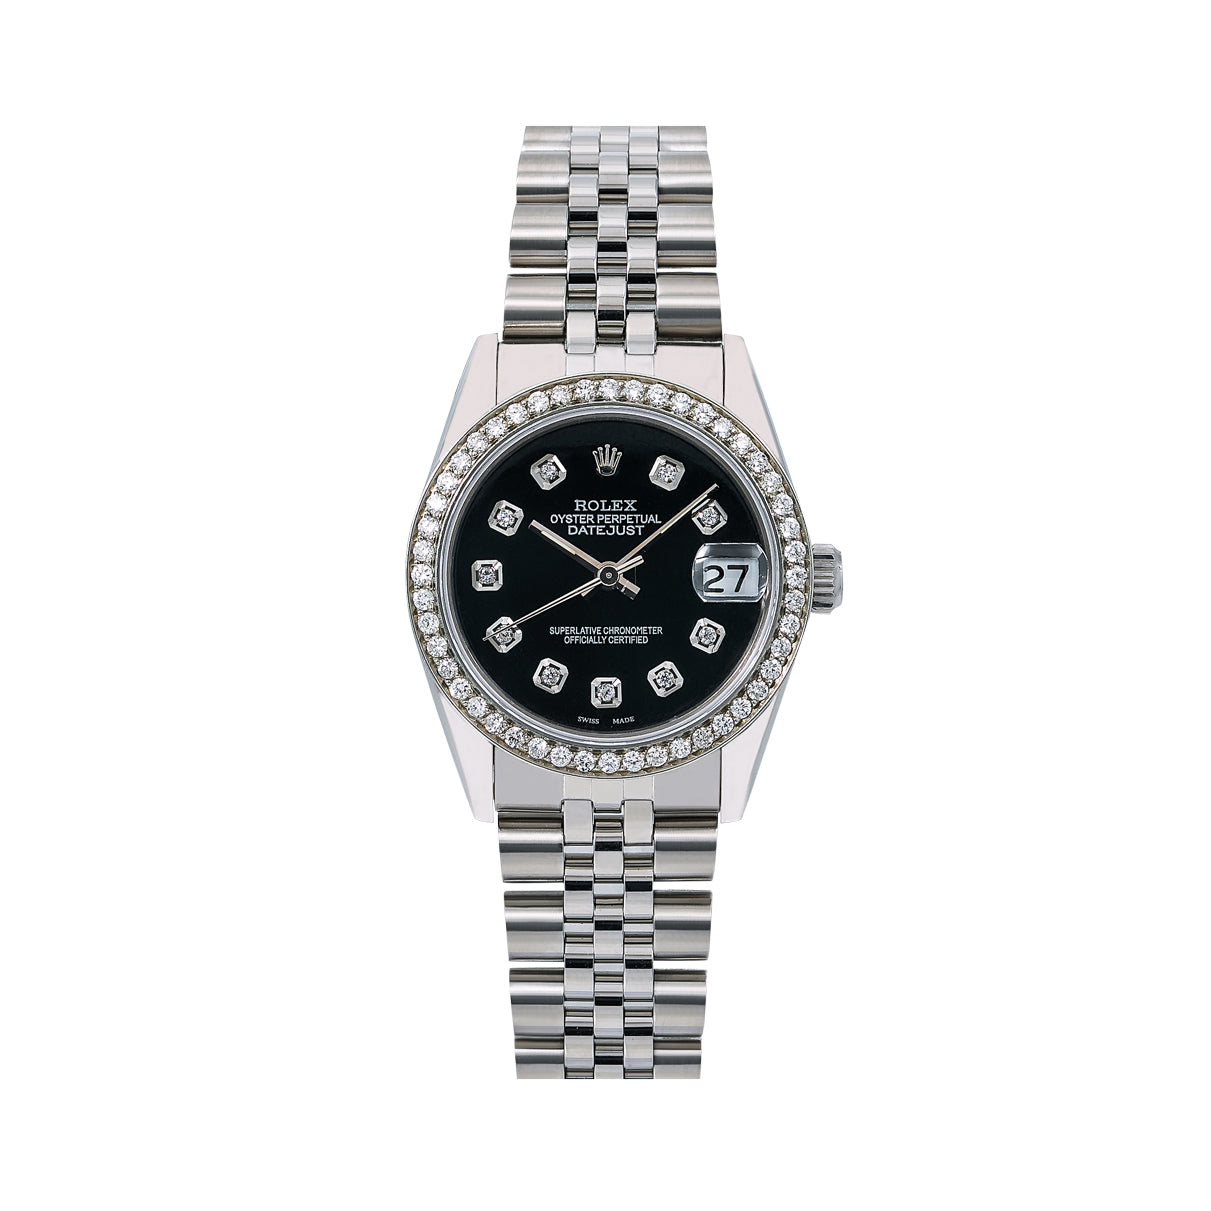 Rolex Datejust Diamond Watch, 68274 31mm, Black Diamond Dial With Stainless Steel Jubilee Bra